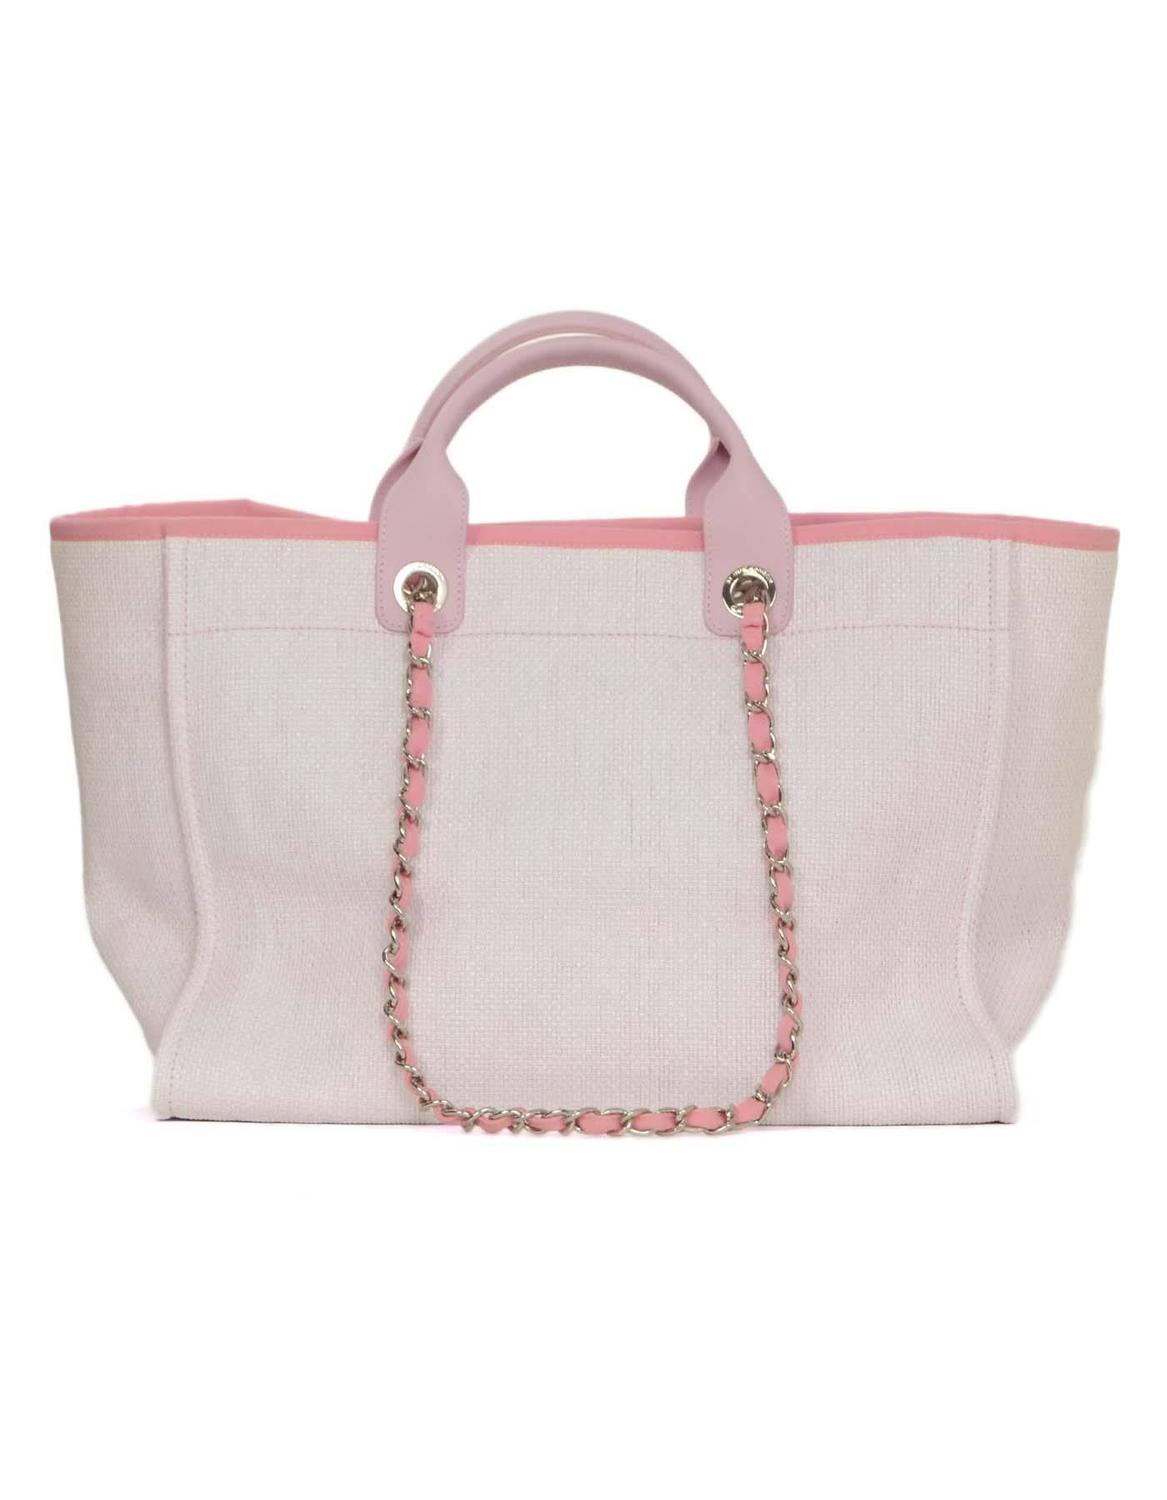 c3deba529399 Chanel Deauville Tote Bag Pink | Stanford Center for Opportunity ...